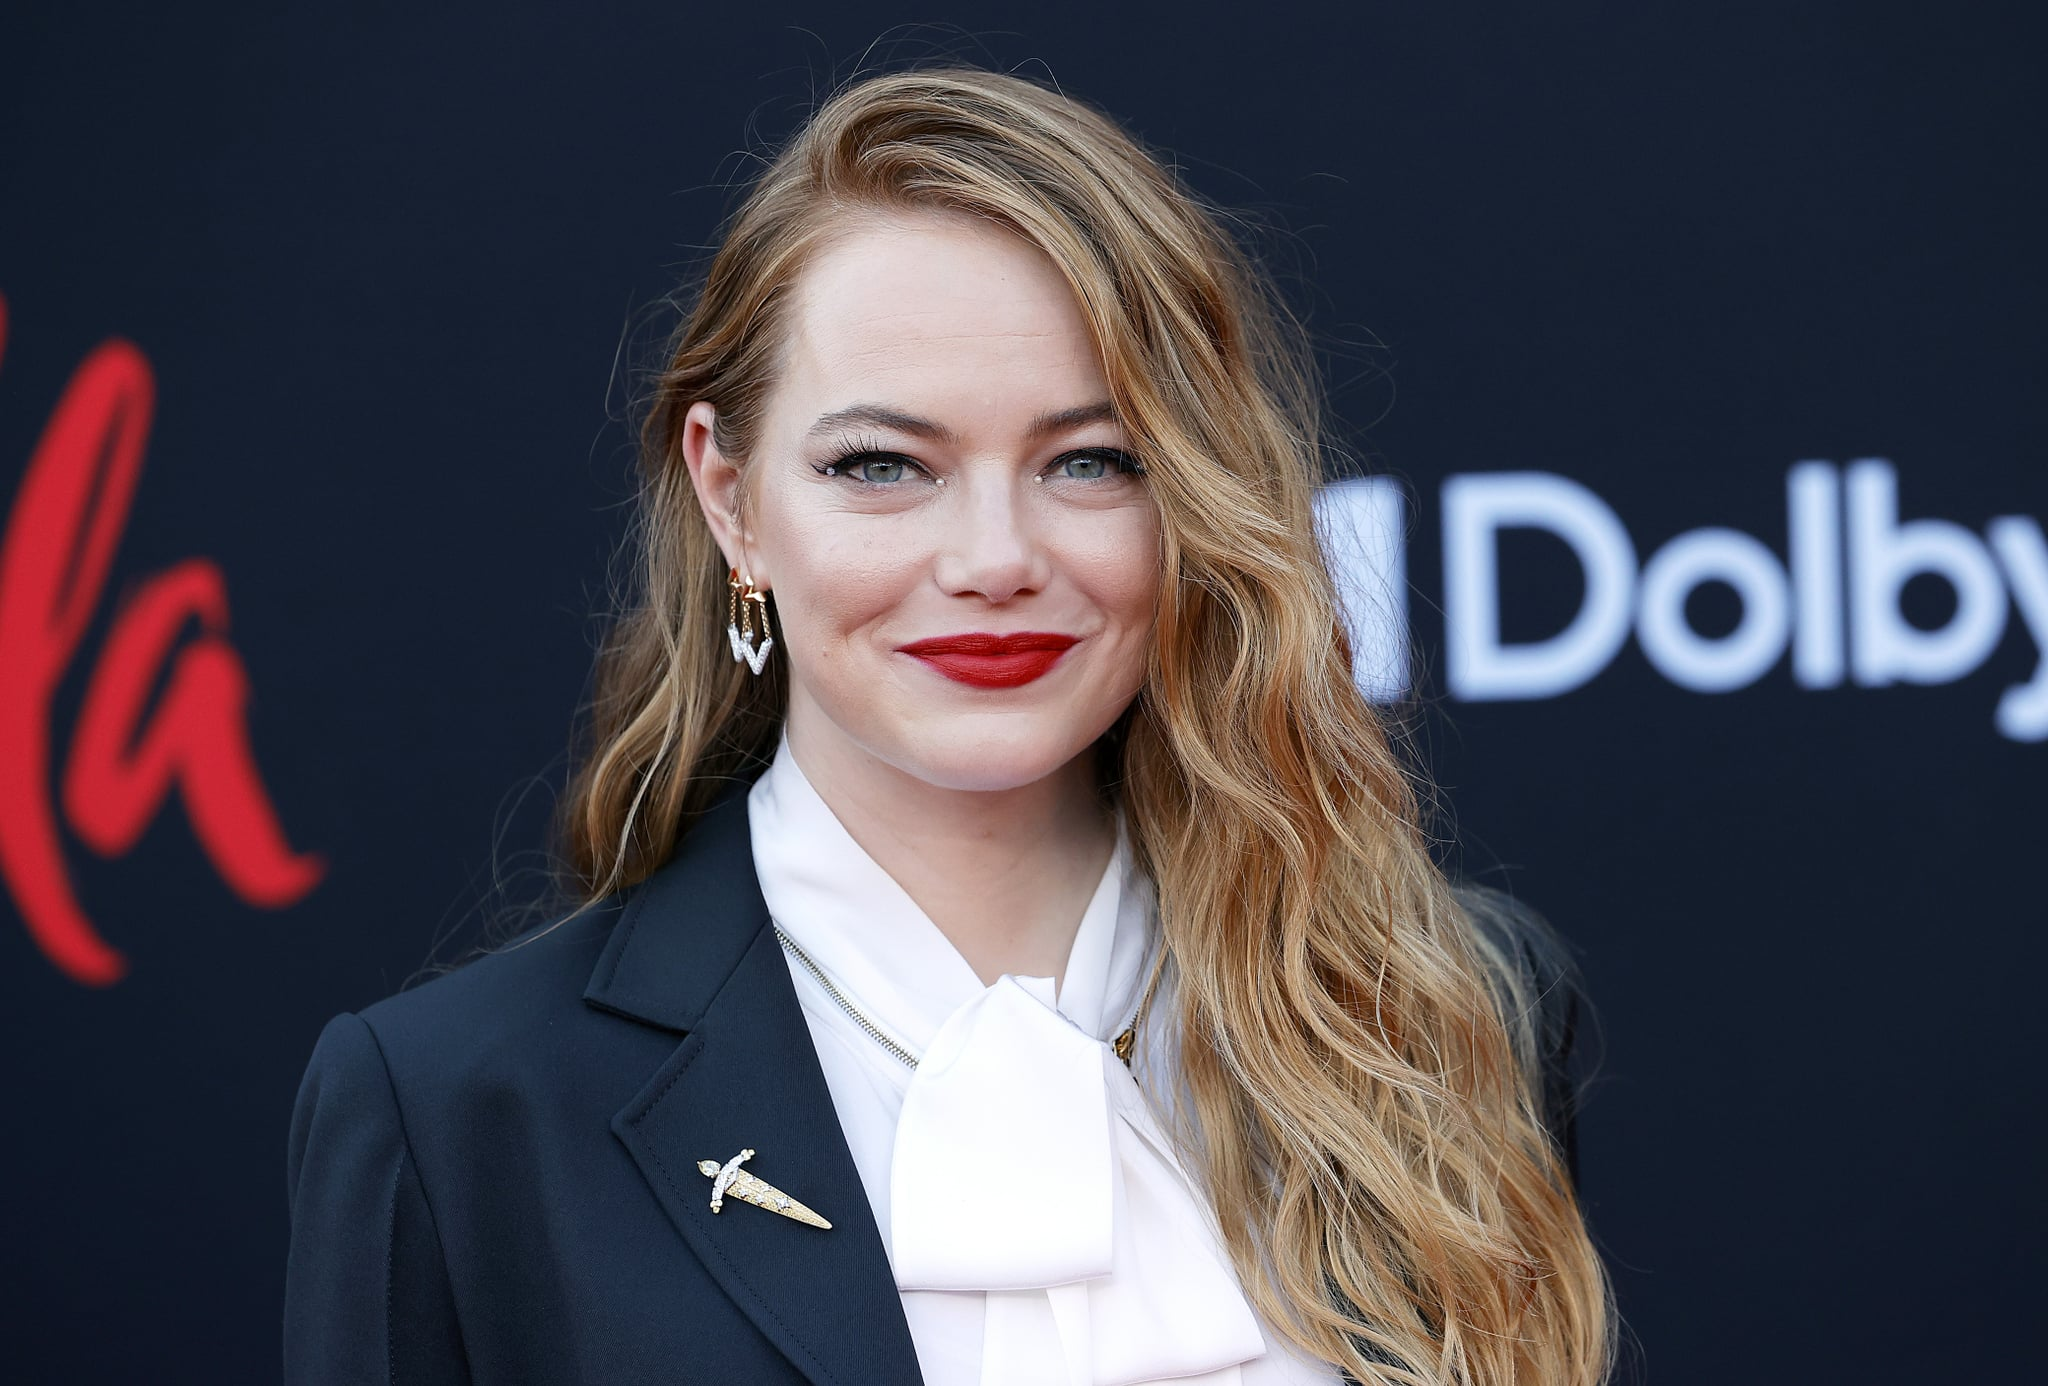 LOS ANGELES, CALIFORNIA - MAY 18: Emma Stone attends the Los Angeles premiere of Disney's